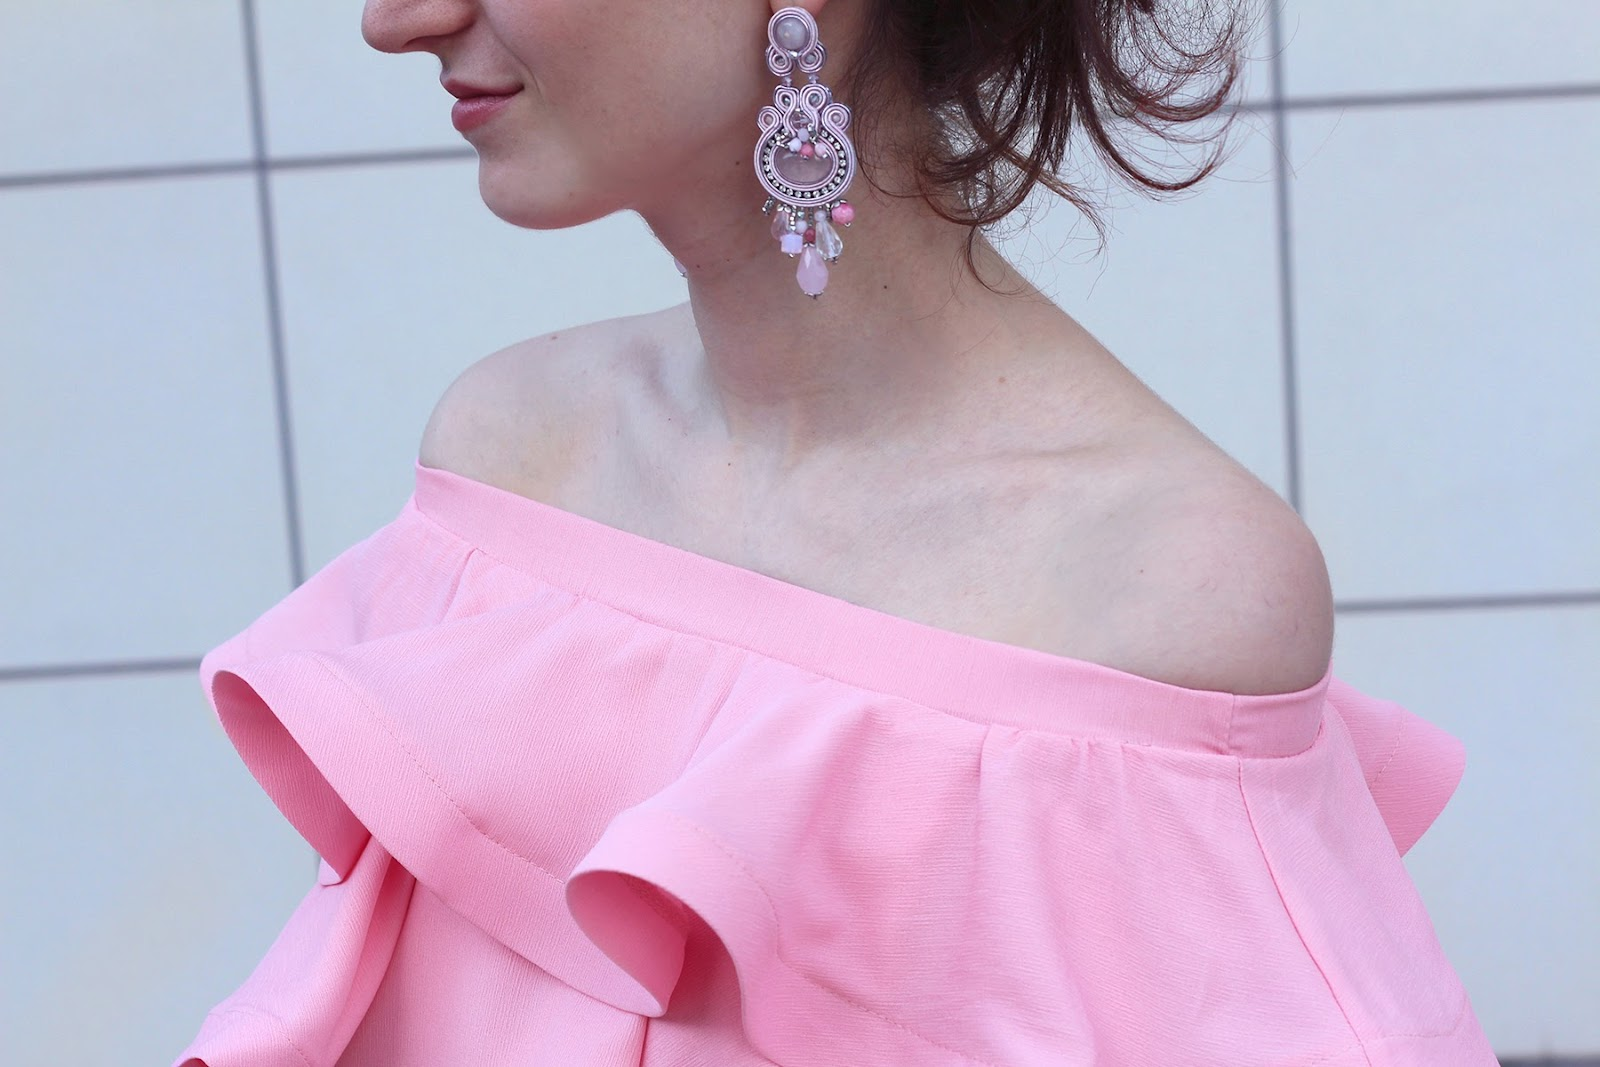 fashion style blogger outfit ootd italian girl italy trend vogue glamour pescara pink volant ruffles ruches off-shoulder dress top chicwish dress link bow heels shoes décolleté axels laboratory soutache earring orecchini zara patatine potatos bag clutch pop